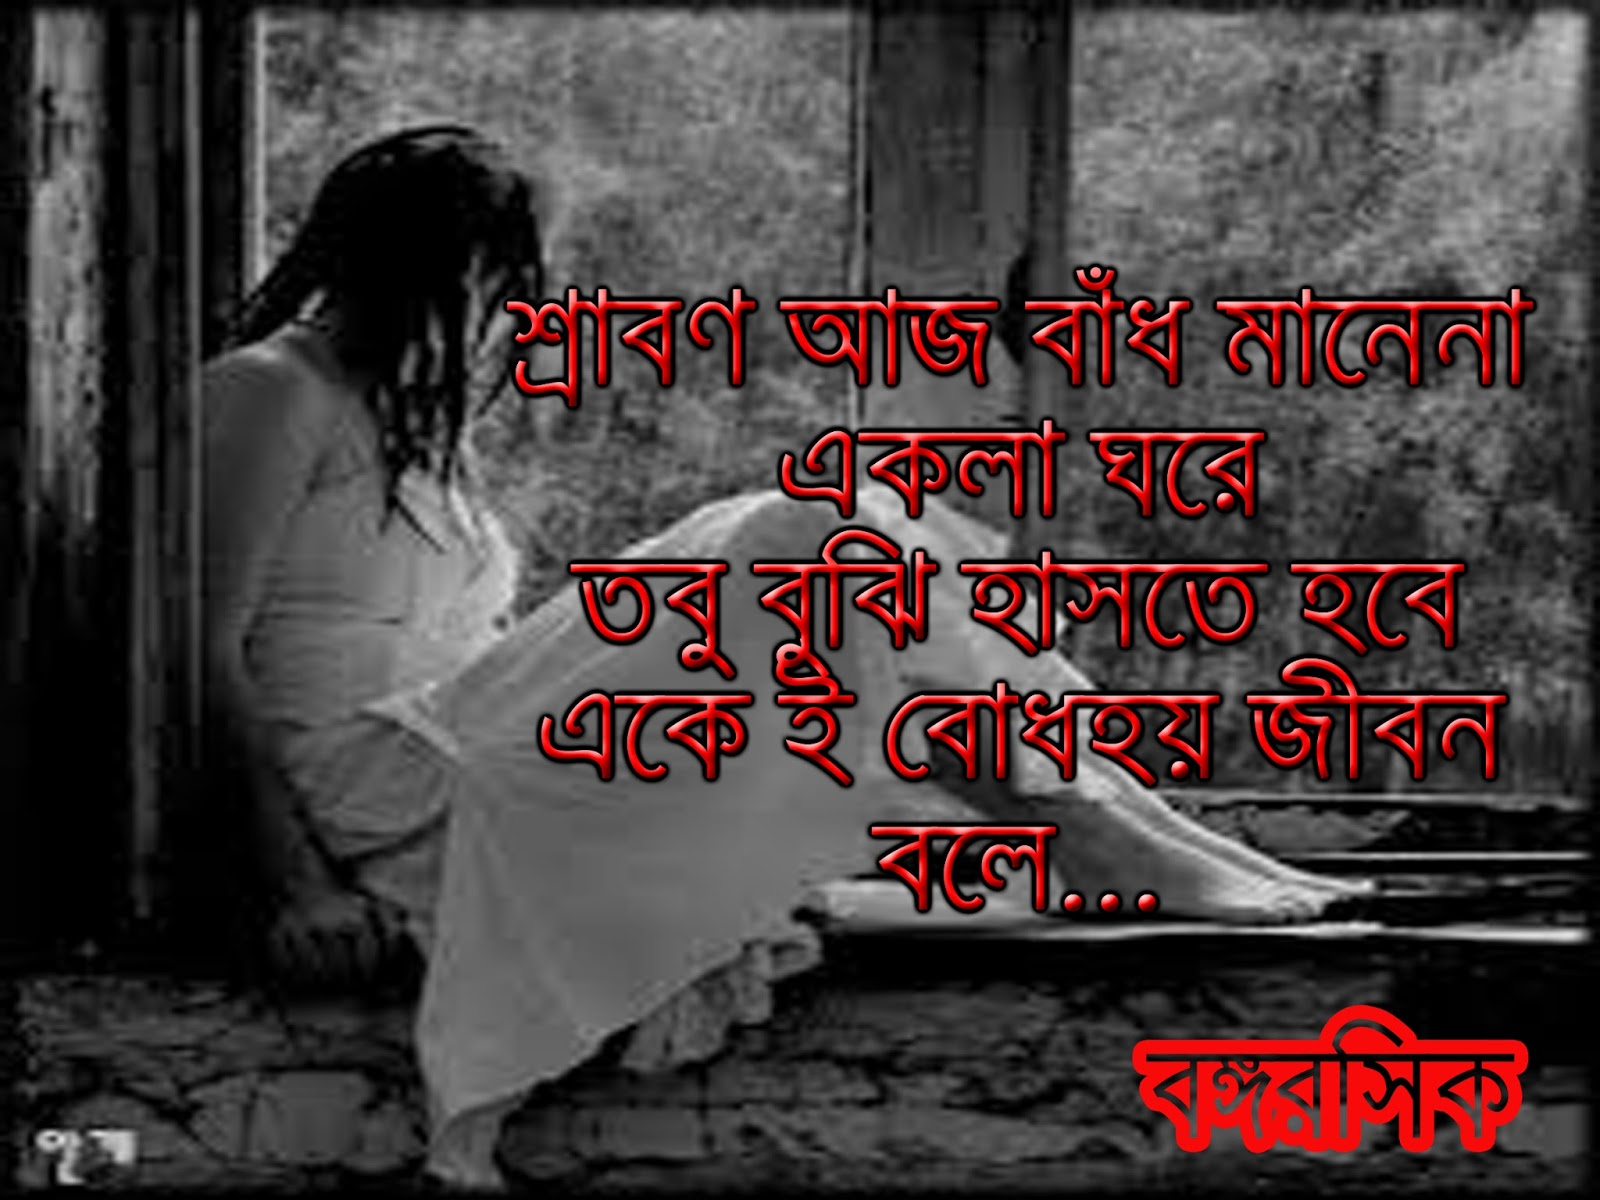 Bongorosik Bengali Quotes Bengali Jokes Bangla Kobita Srabon